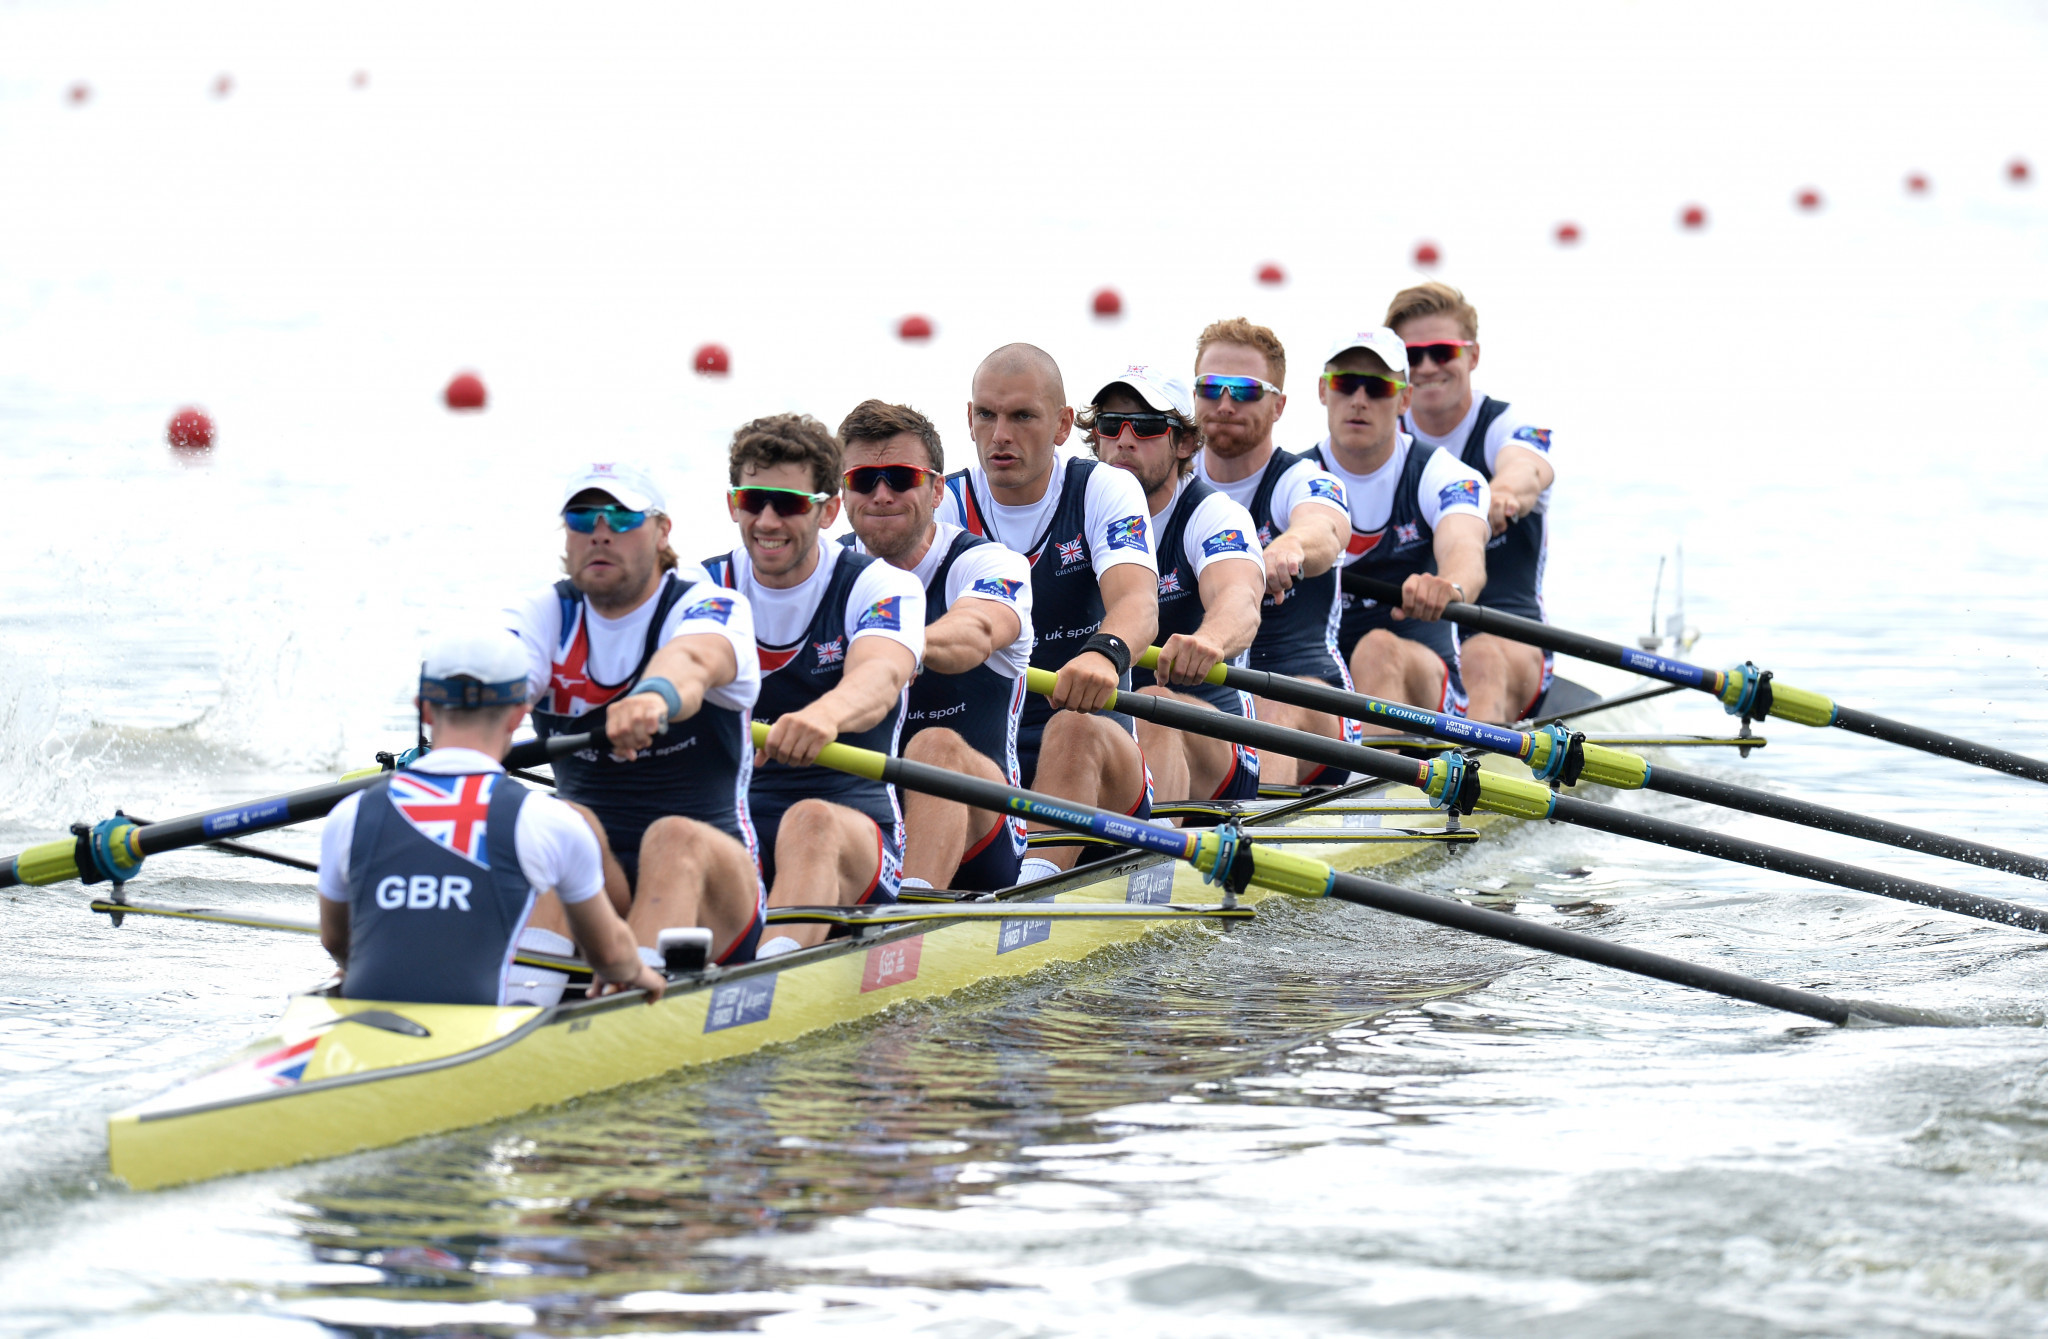 Britain's men's eight crew advanced to the final from the repechage ©Getty Images